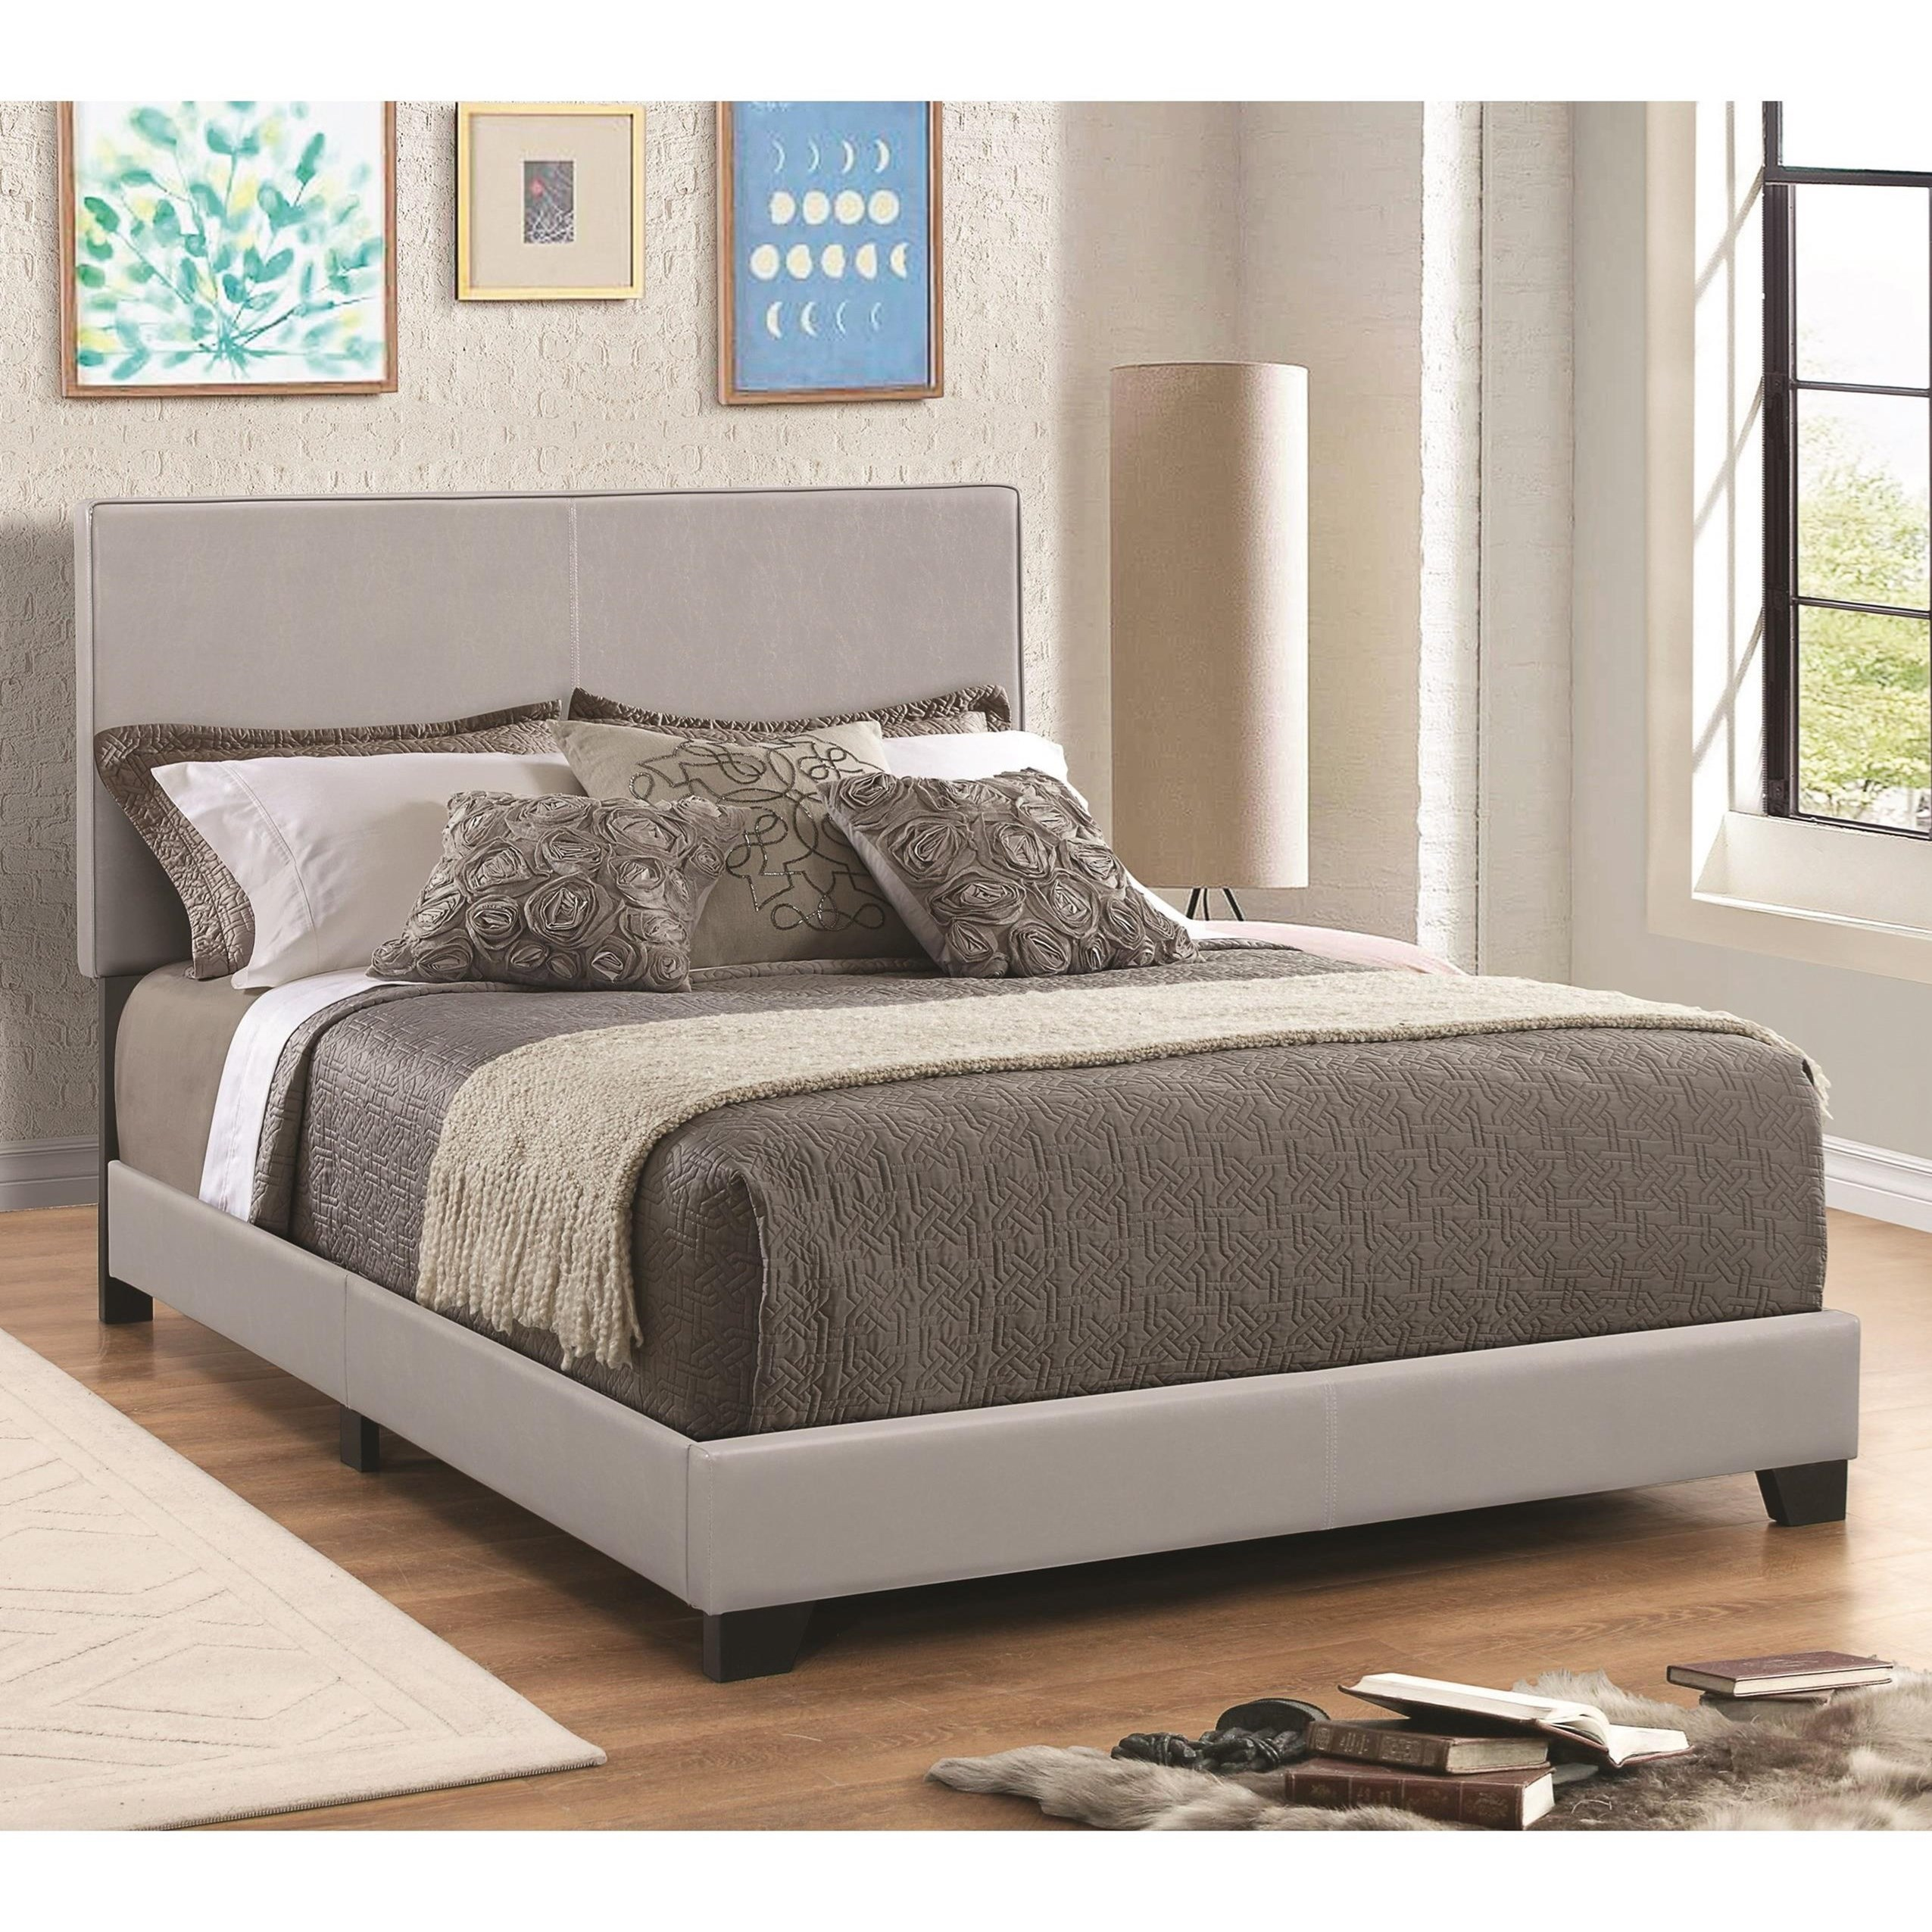 Dorian Grey Twin Bed by Coaster at Northeast Factory Direct